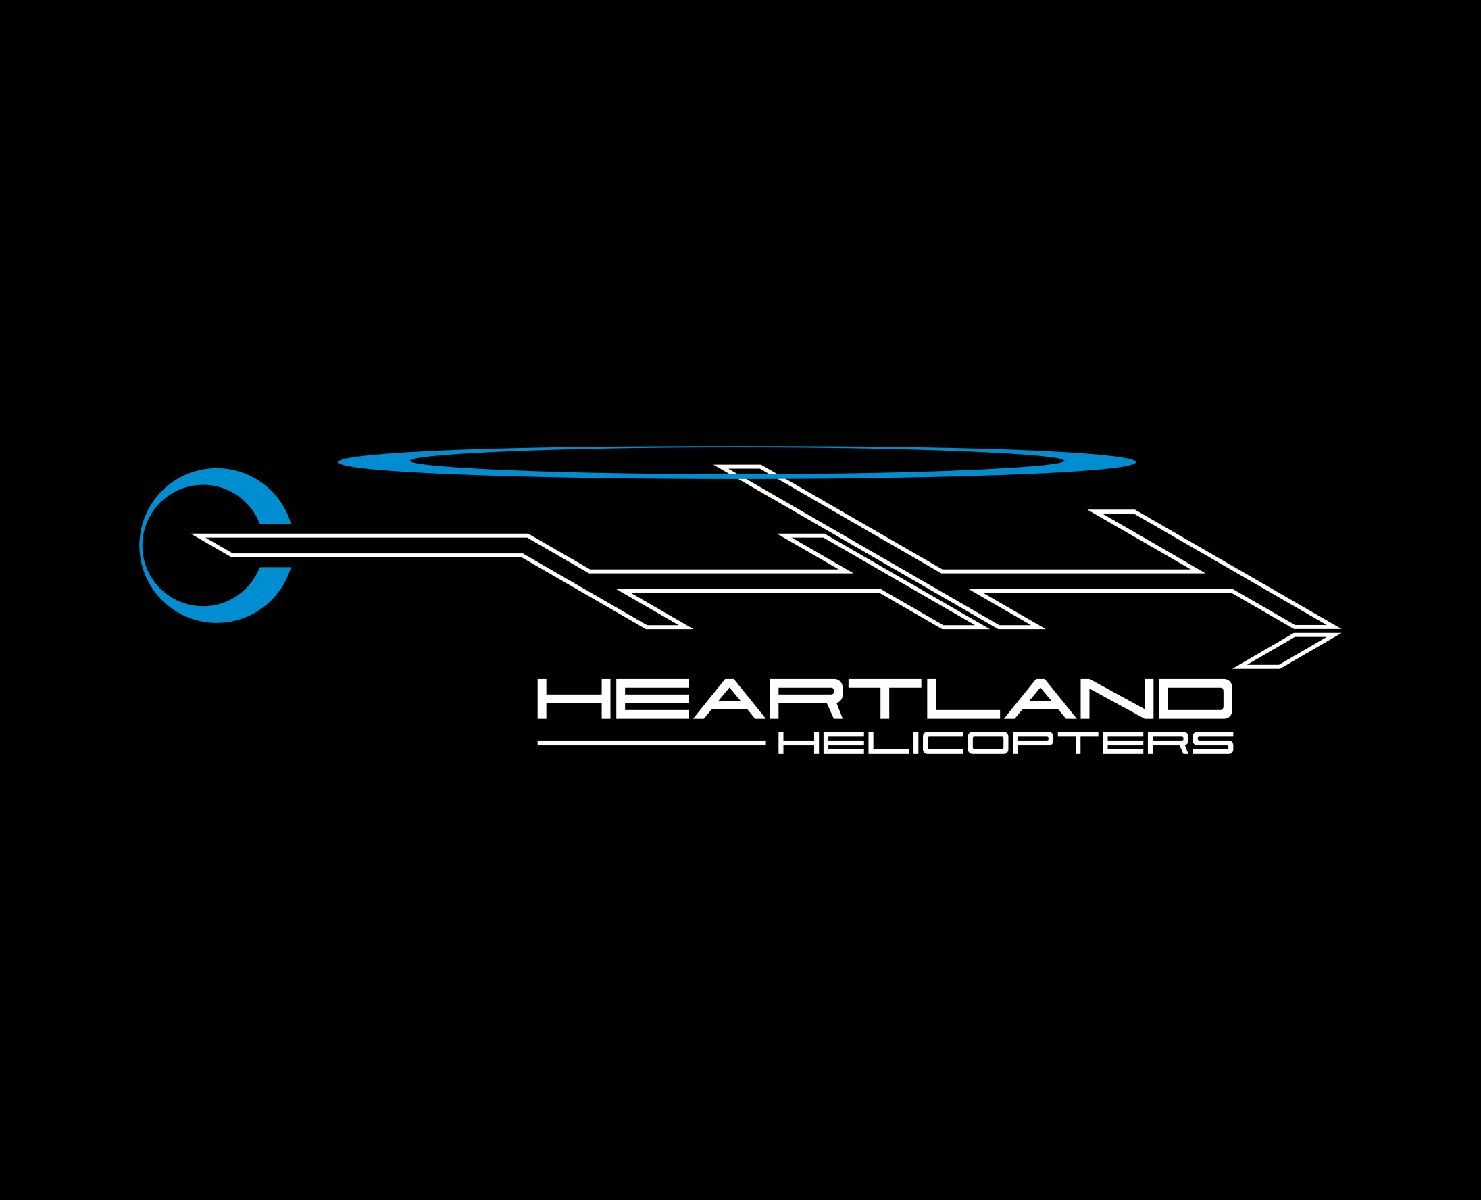 Heartland Helicopters LLC